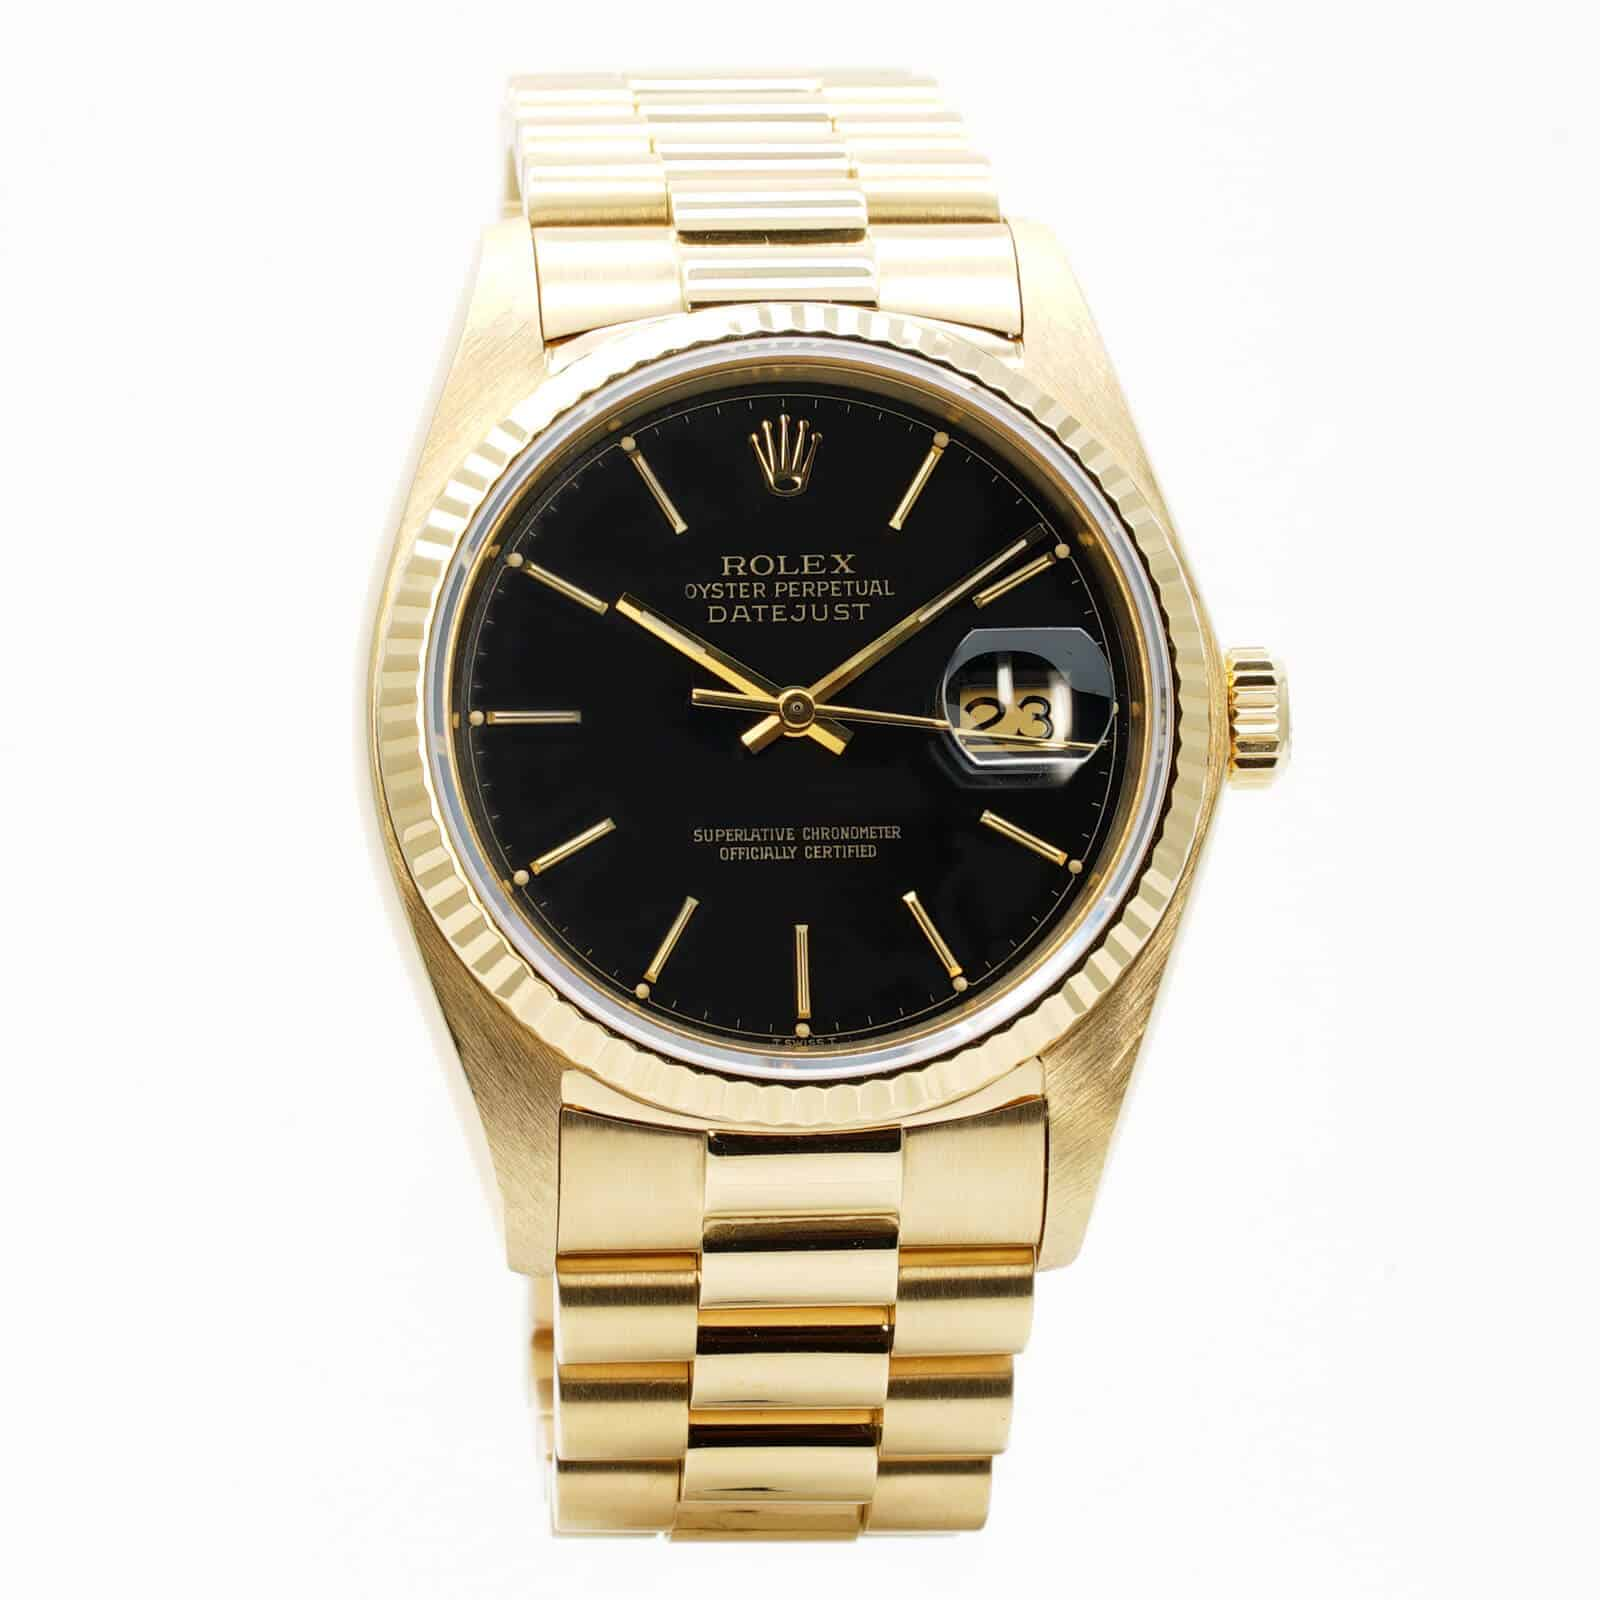 70f4f5d53ad Oyster Perpetual Date Just 36. Montre-Rolex-Date-Just -36-occasion-Lionel-Meylan-